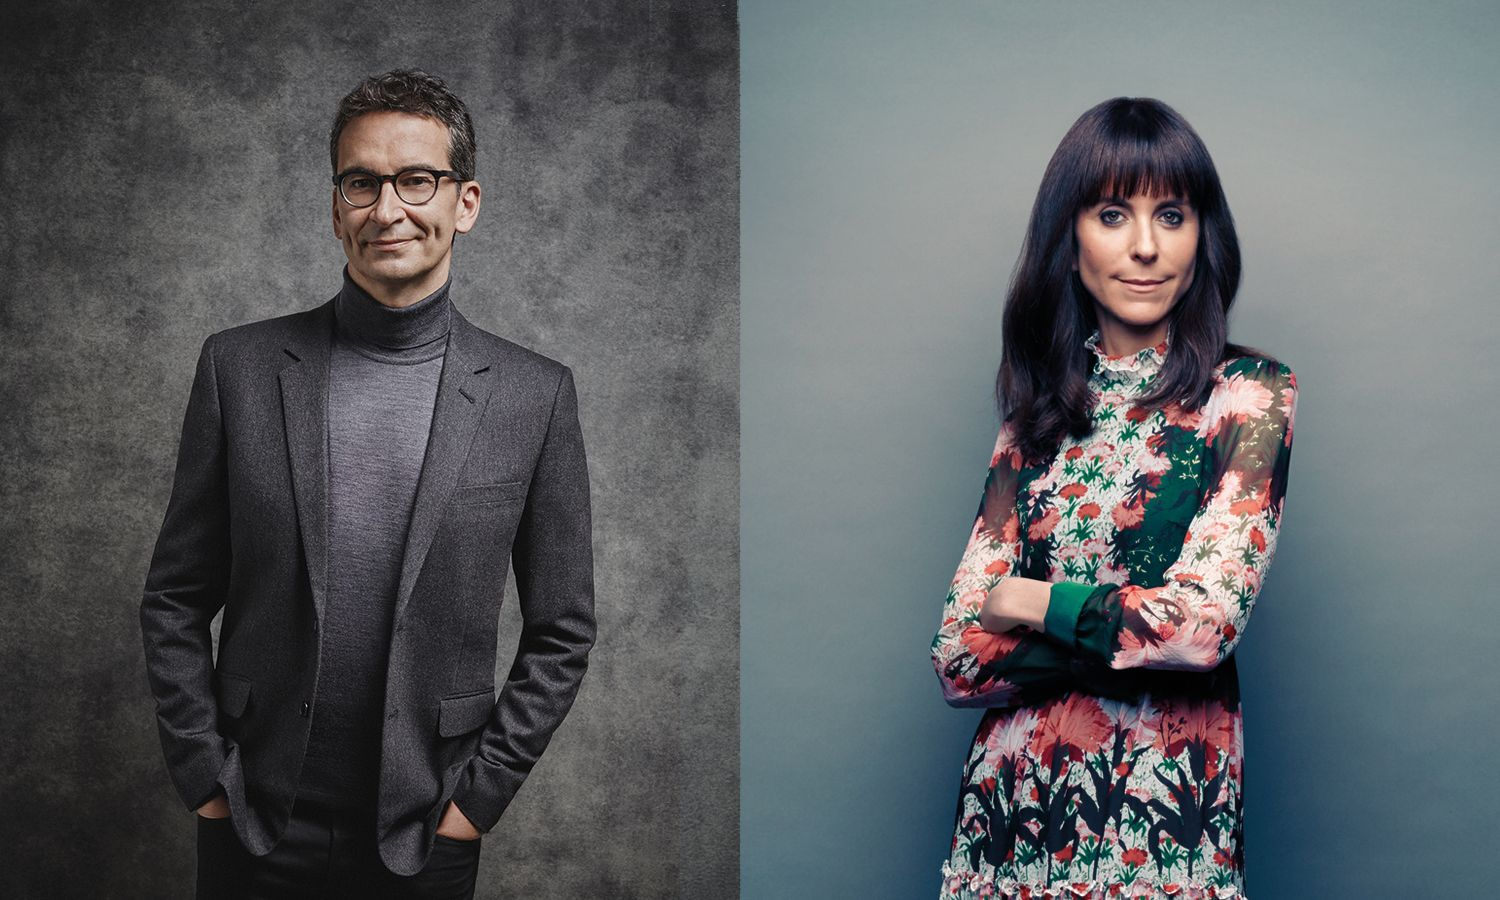 Alison Loehnis and Federico Marchetti on The Merging of Net-A-Porter and Yoox